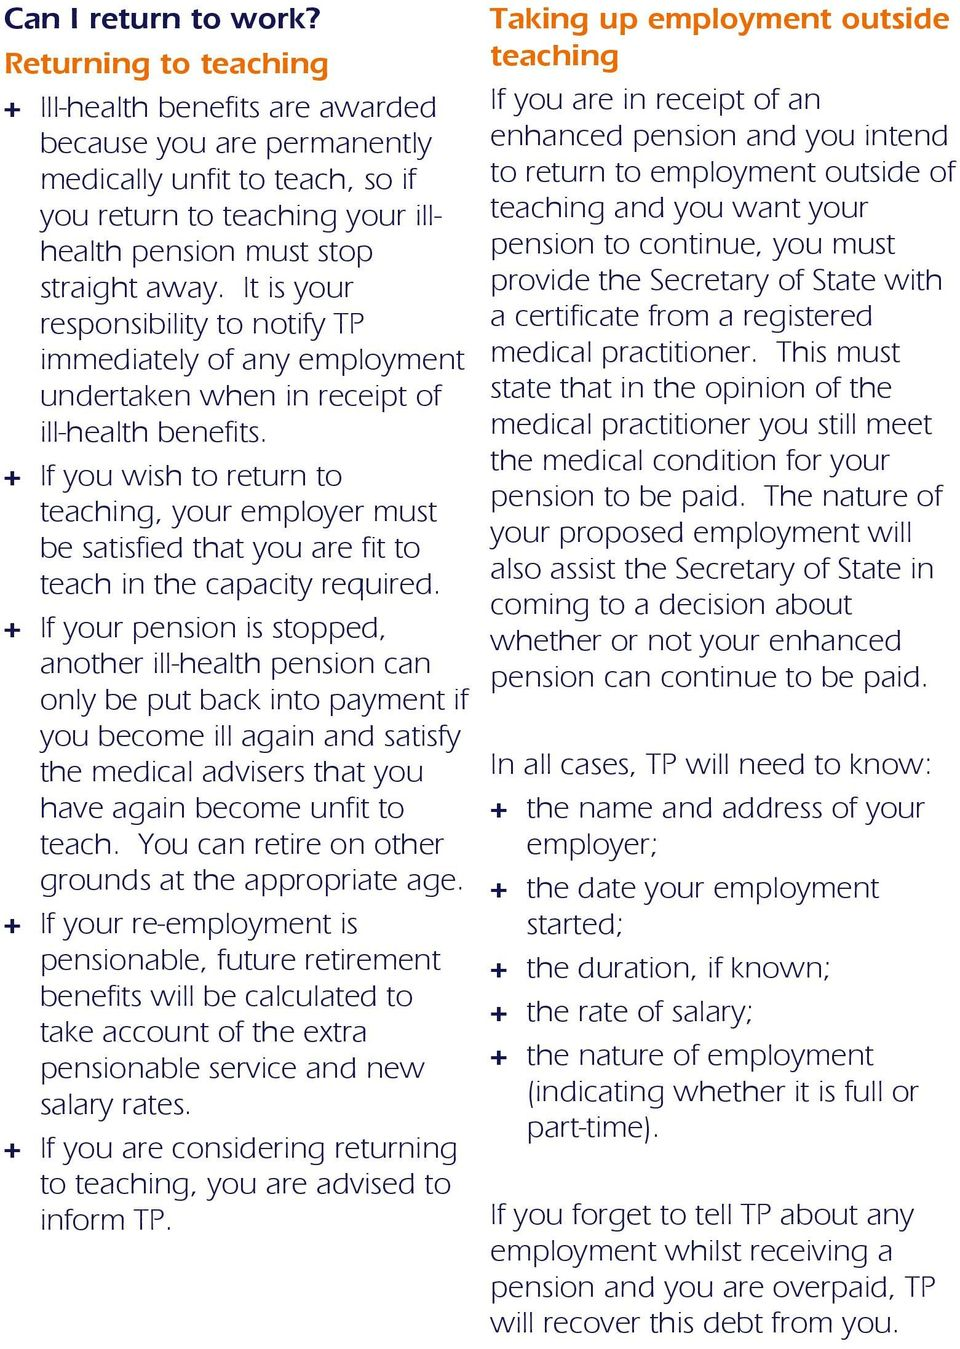 It is your responsibility to notify TP immediately of any employment undertaken when in receipt of ill-health benefits.